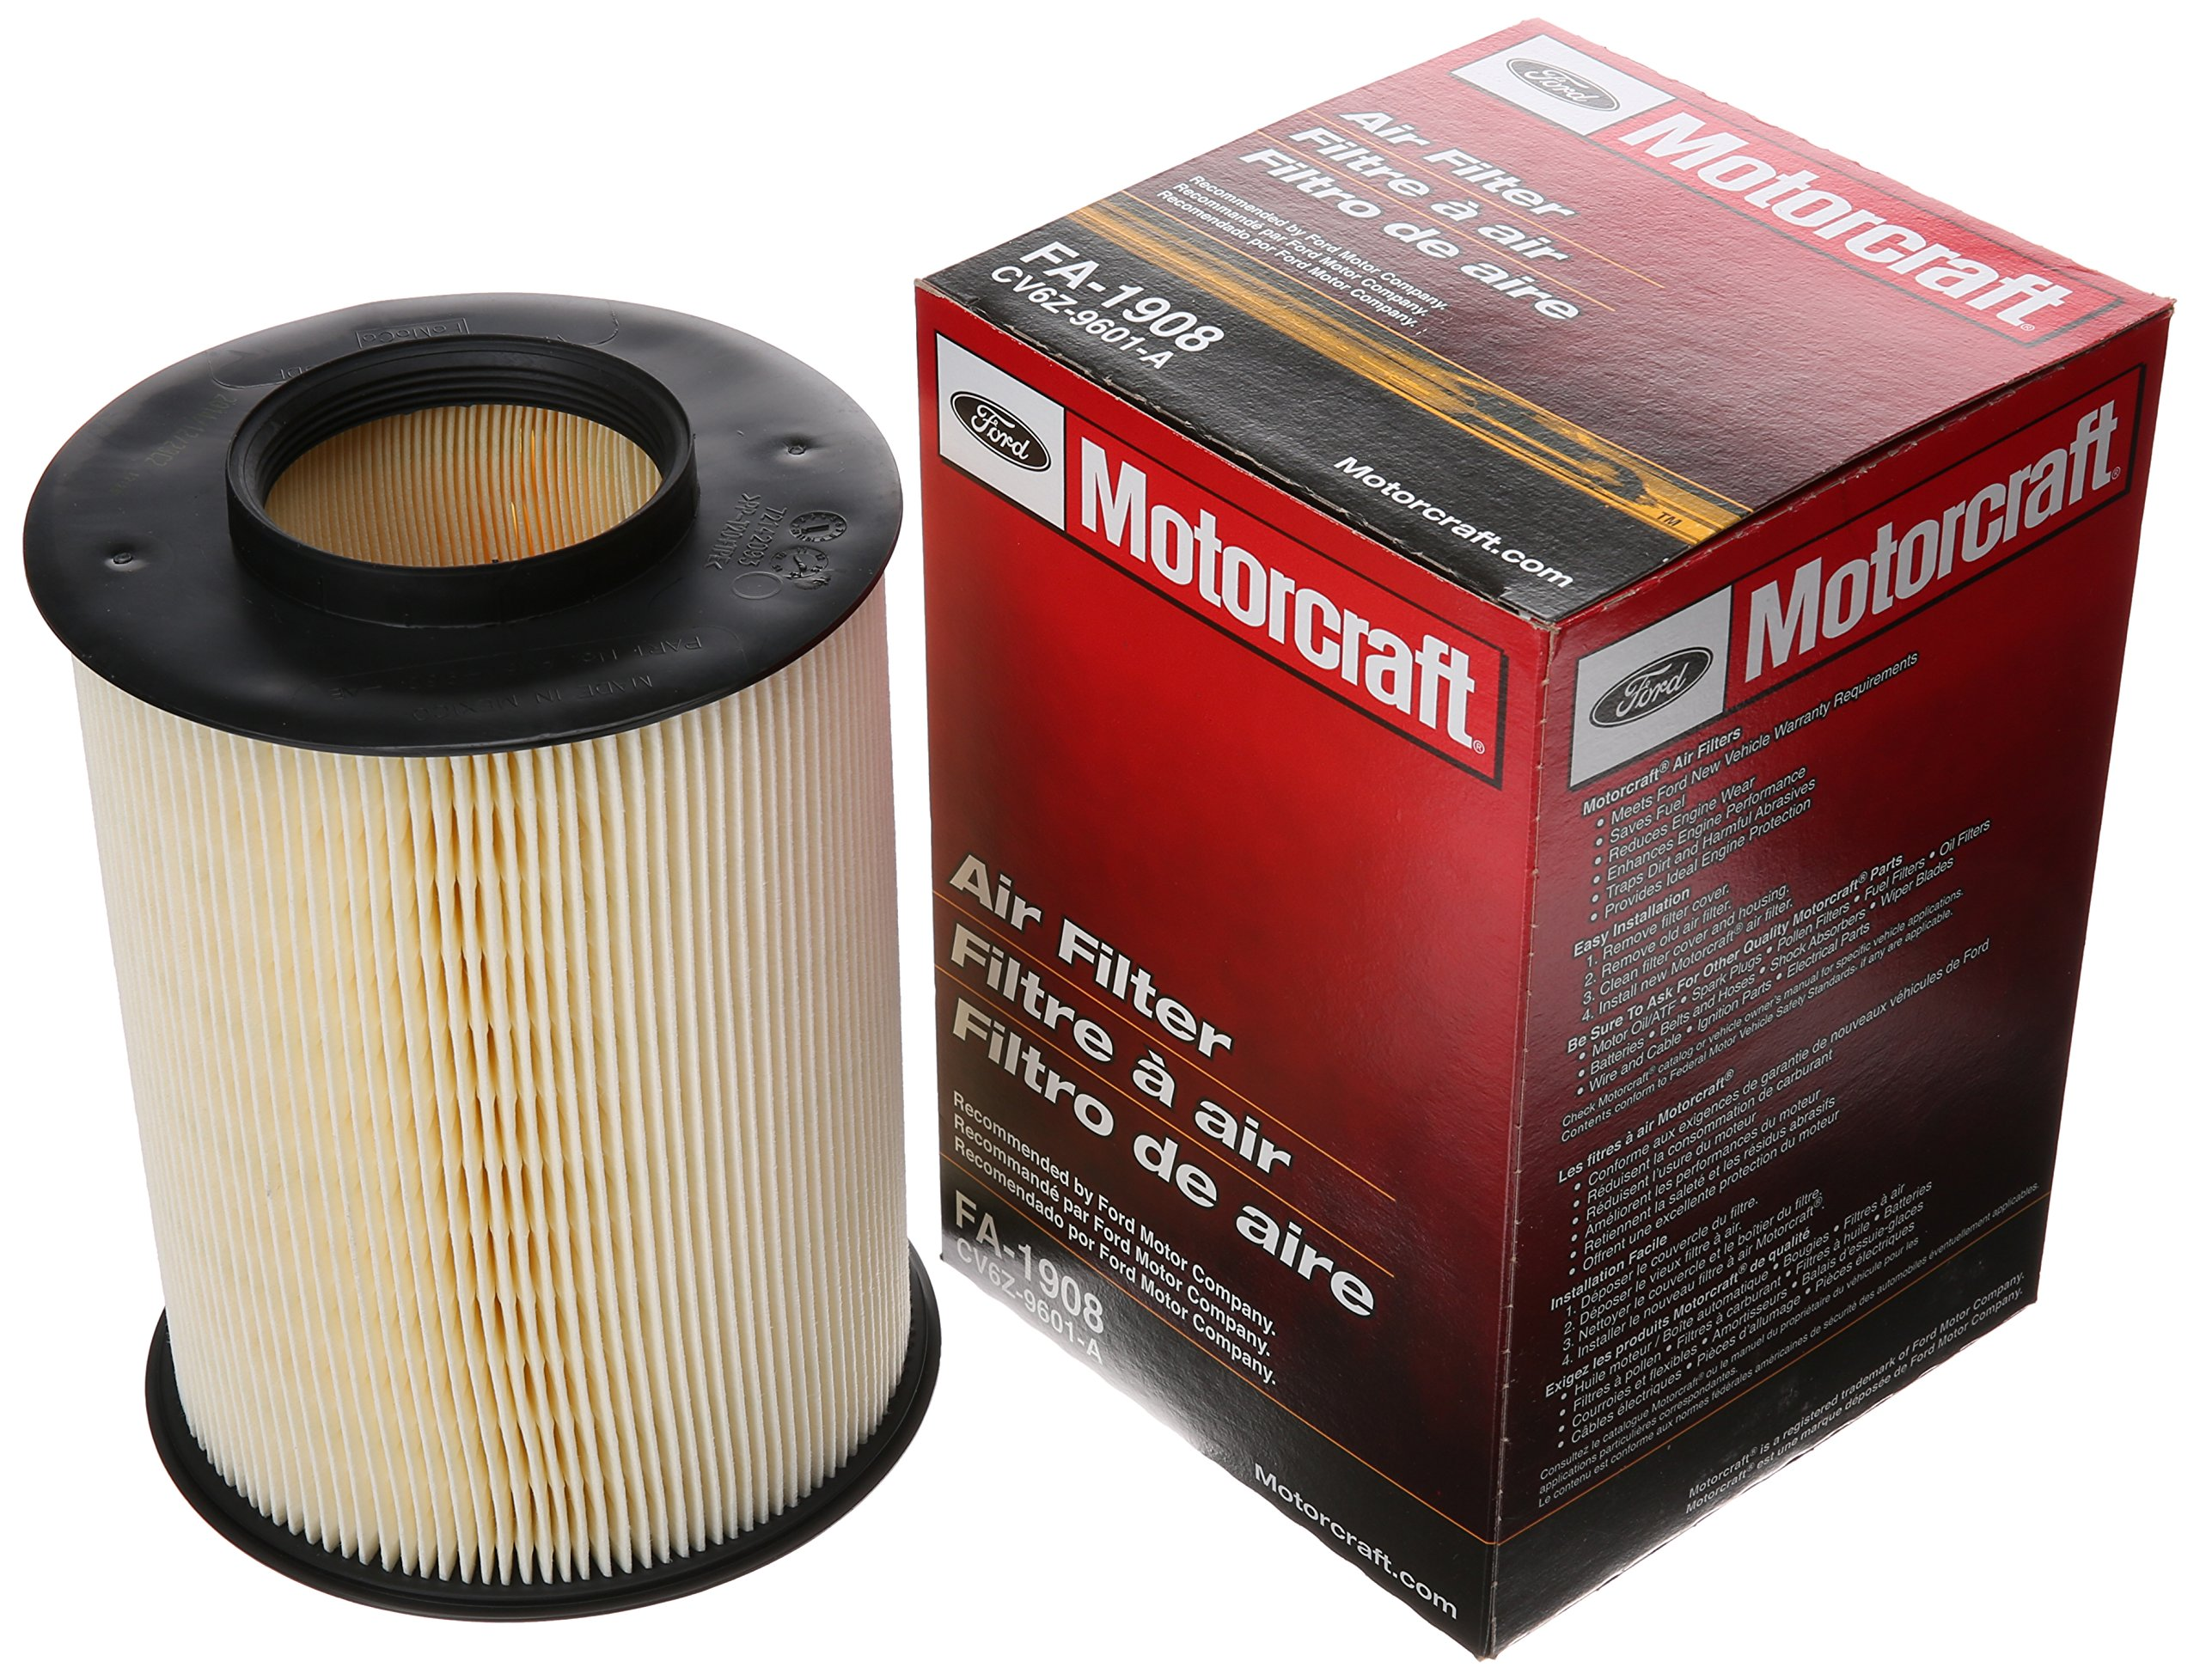 Motorcraft FA-1908 Air Filter by Motorcraft